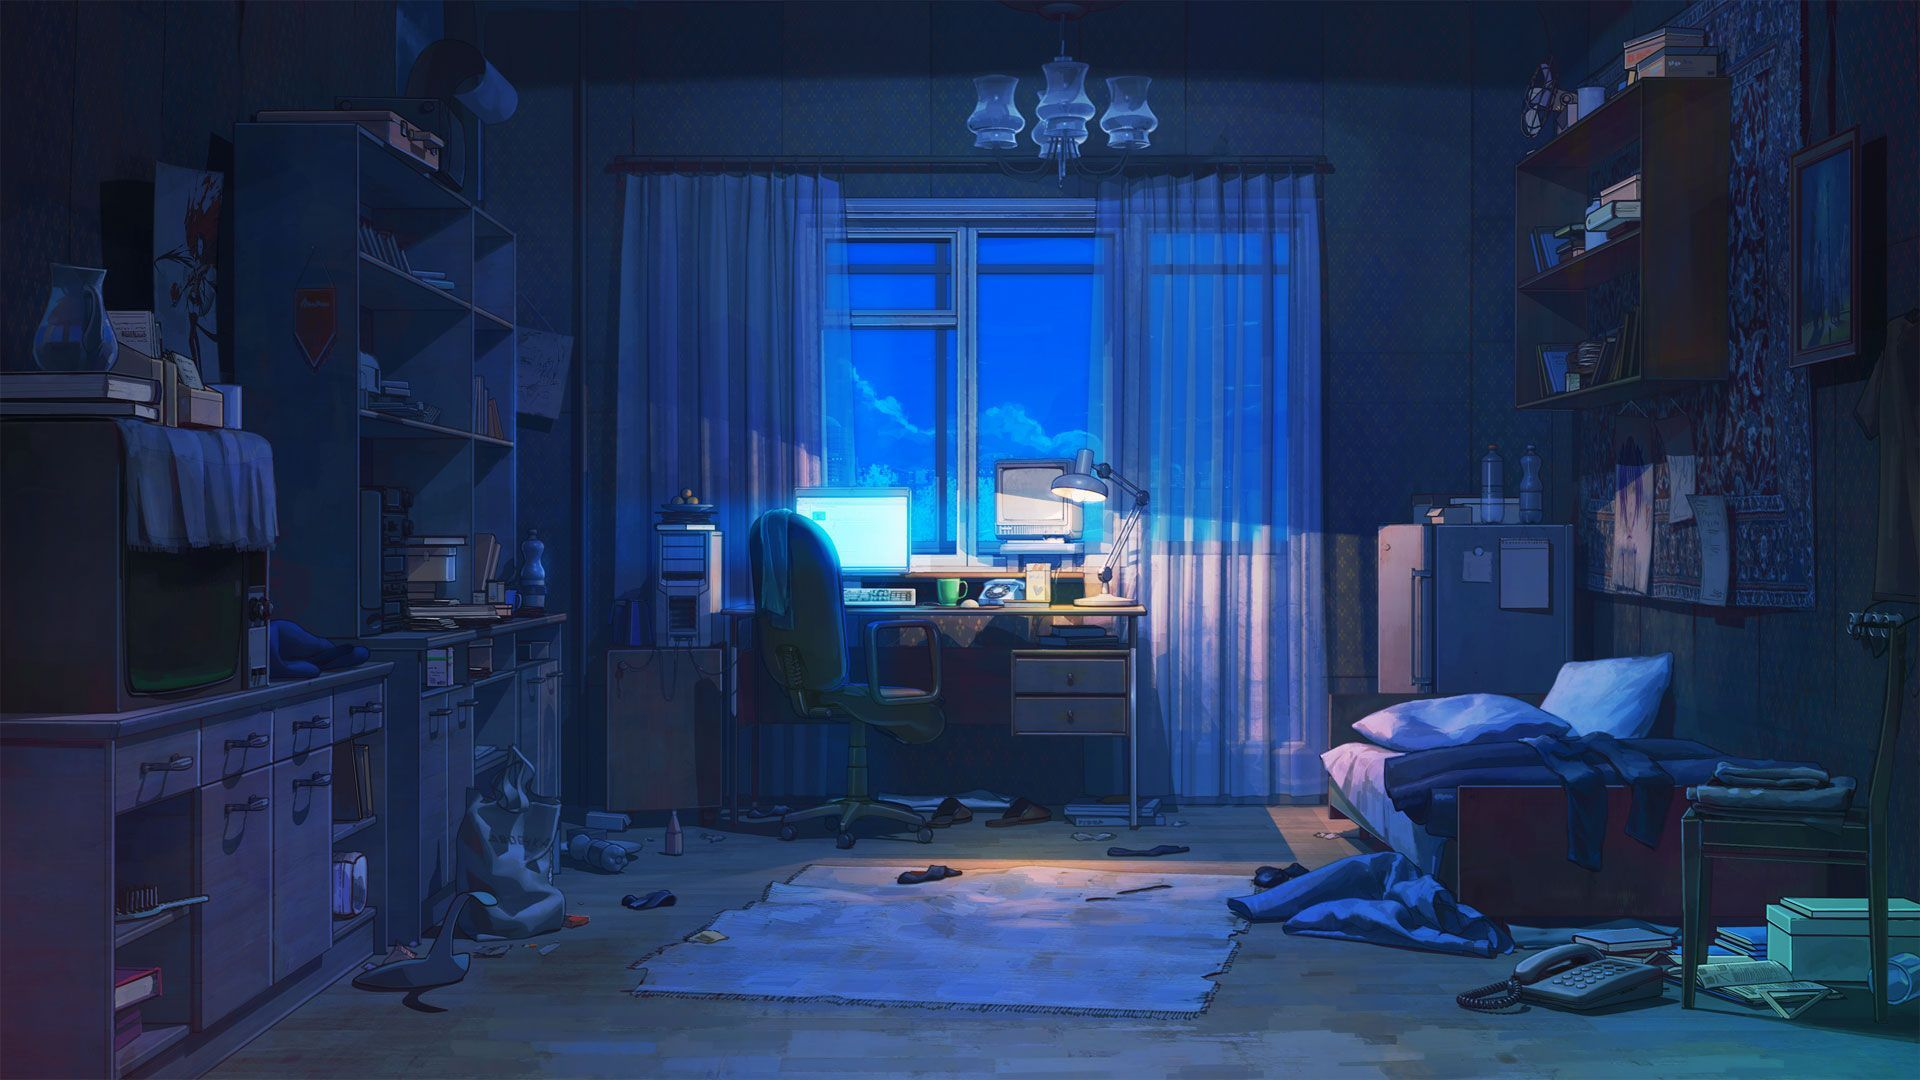 1920x1080 Mixtape Cover Background 110 | Anime scenery wallpaper, Anime ...